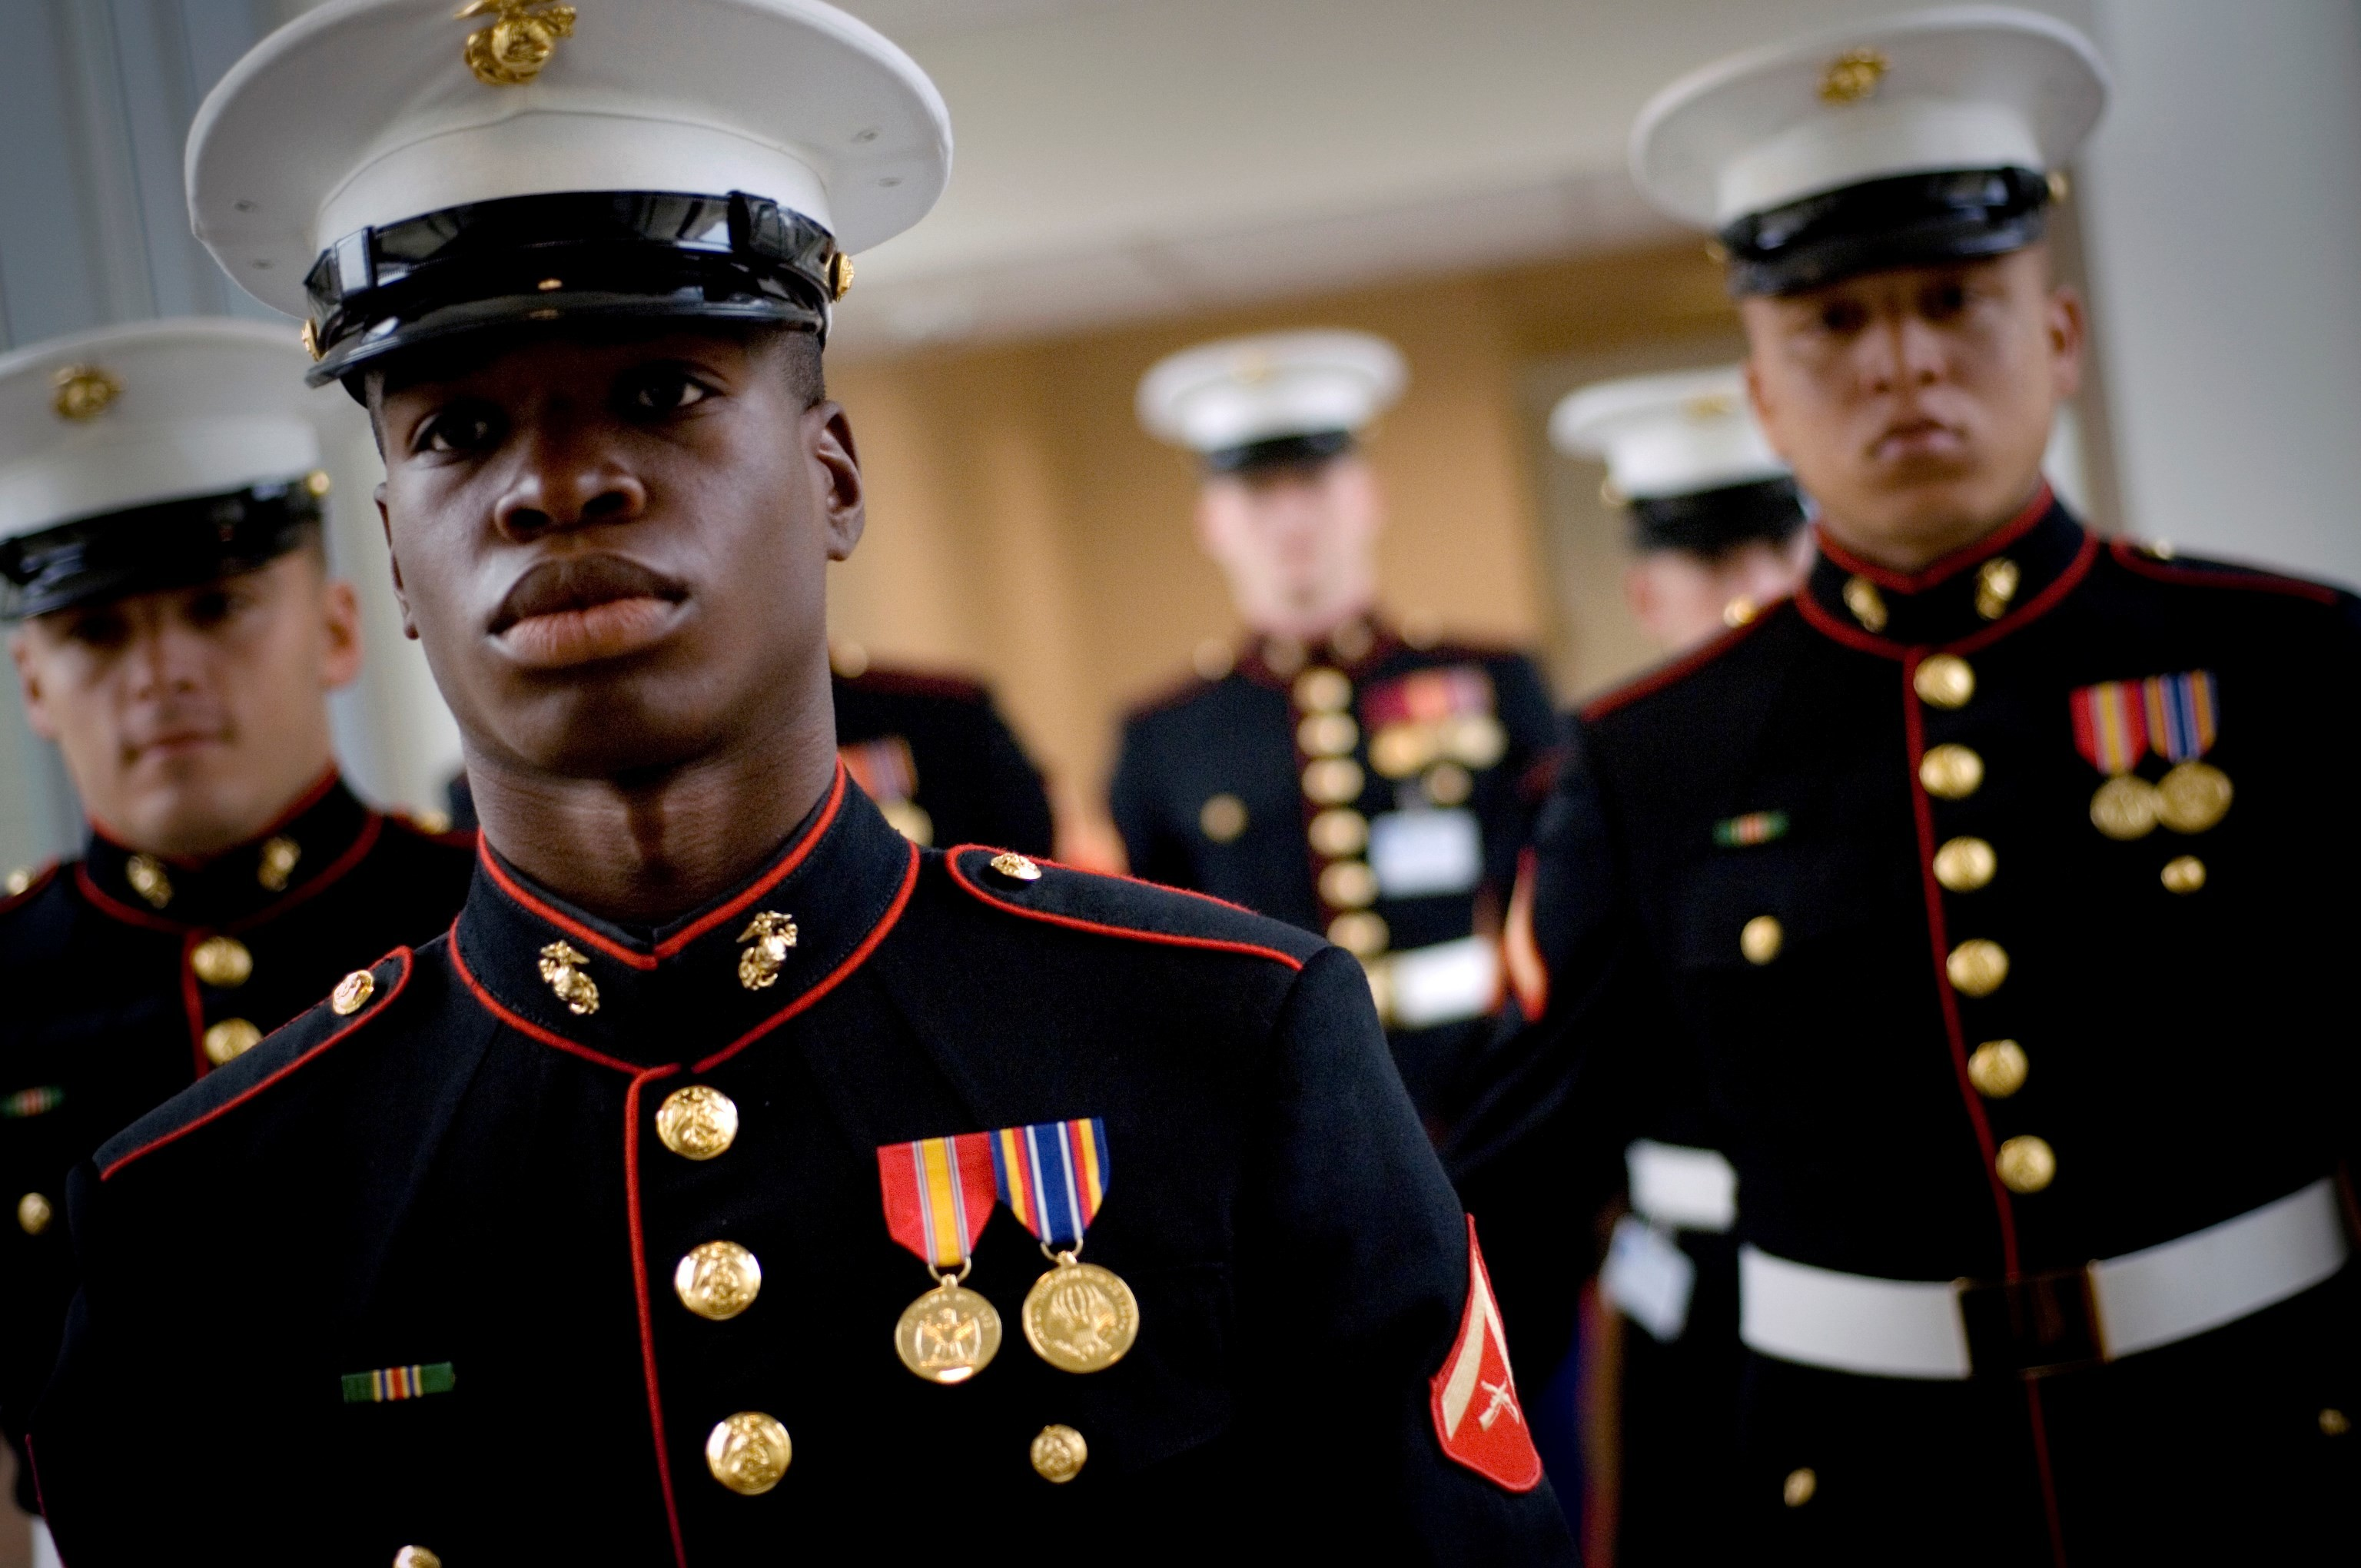 x-px-marine-corps-pack-1080p-hd-by-